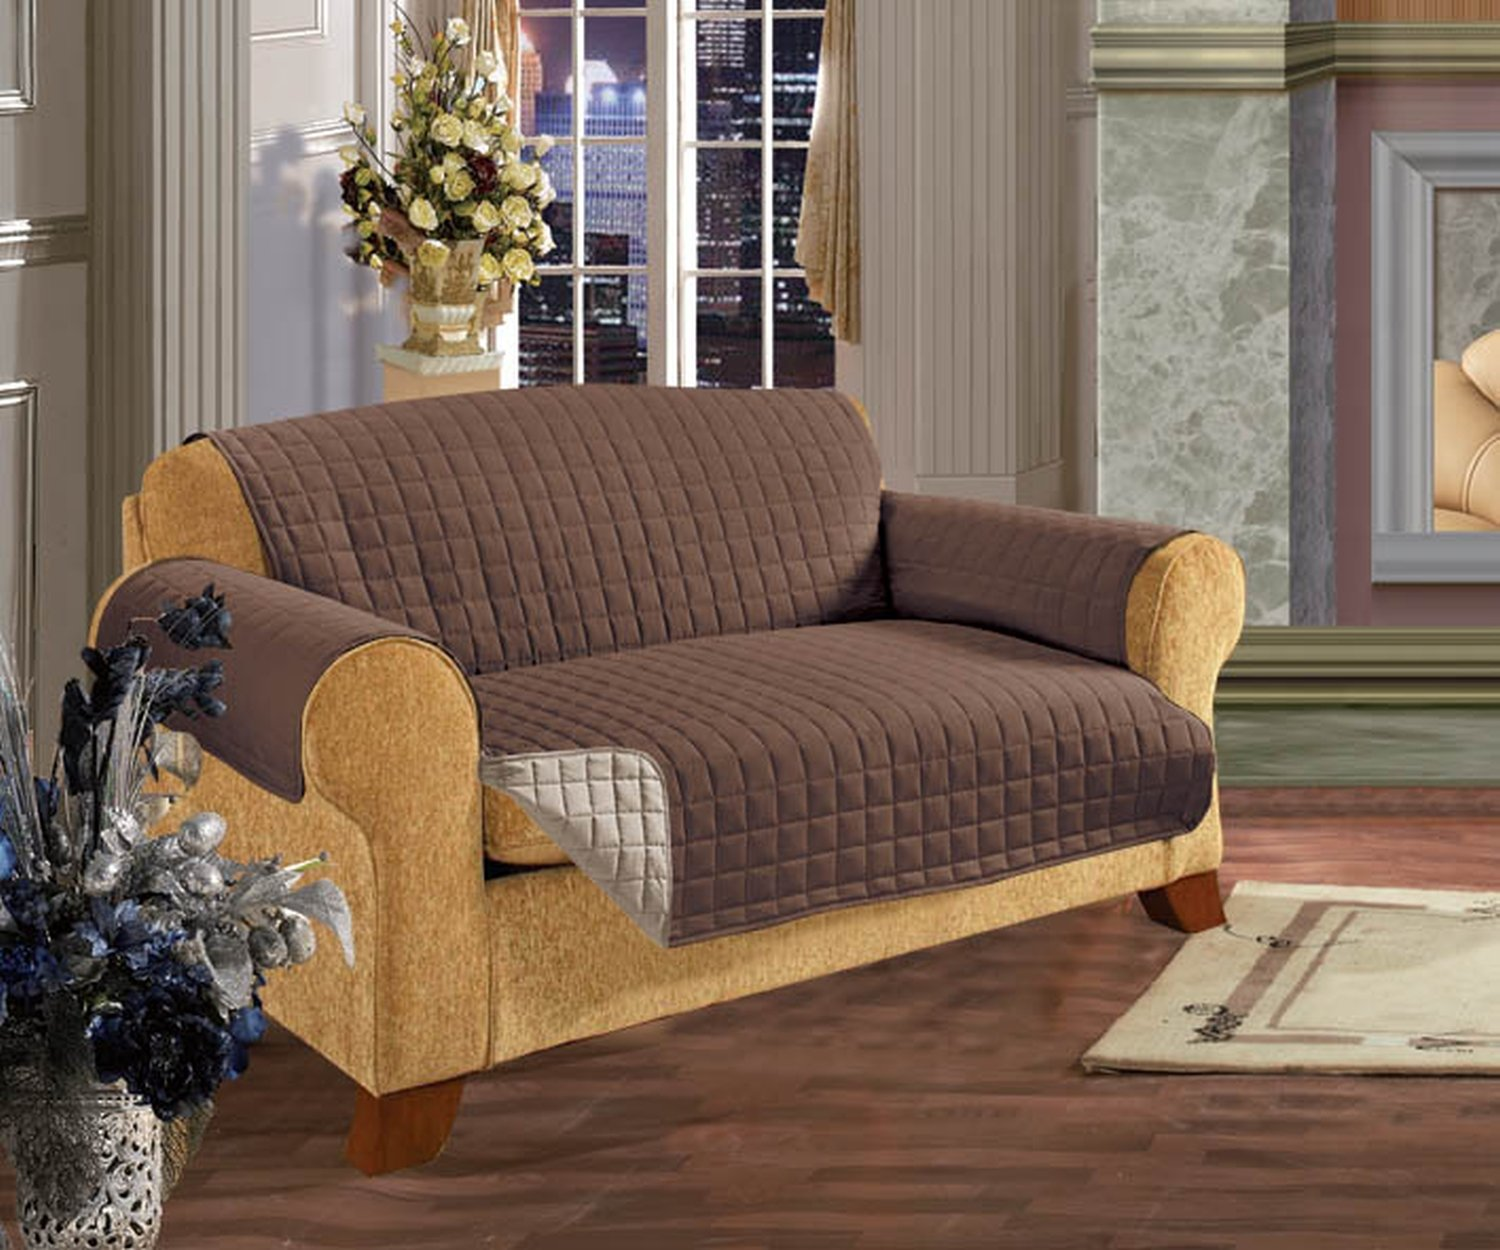 Amazon.com: Elegance Linen Quilted Pet Dog Children Kids Furniture  Protector Microfiber Slip Cover Sofa, Chocolate: Home U0026 Kitchen